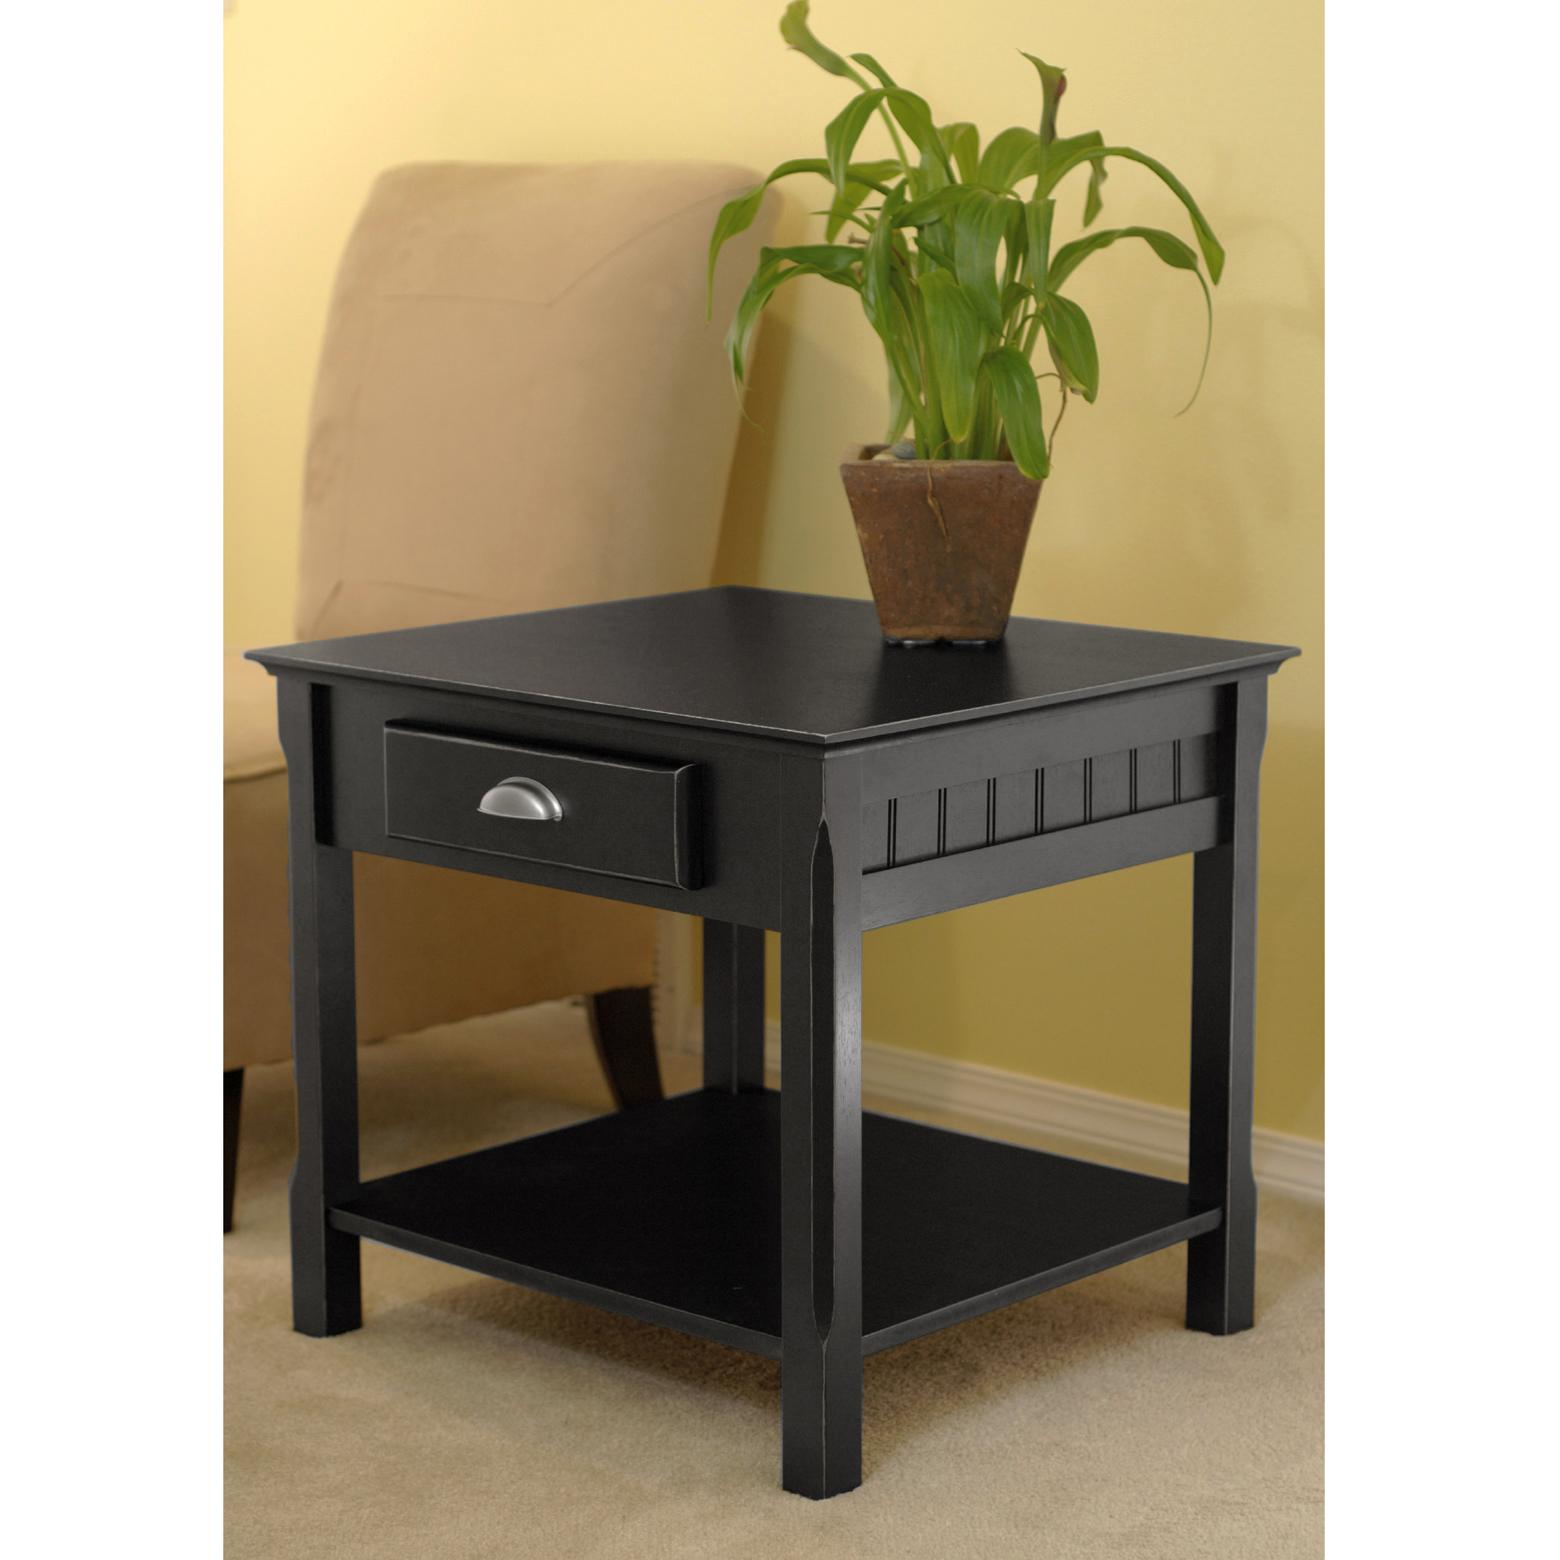 Amazon Winsome Wood End Table with Drawer and Shelf Black